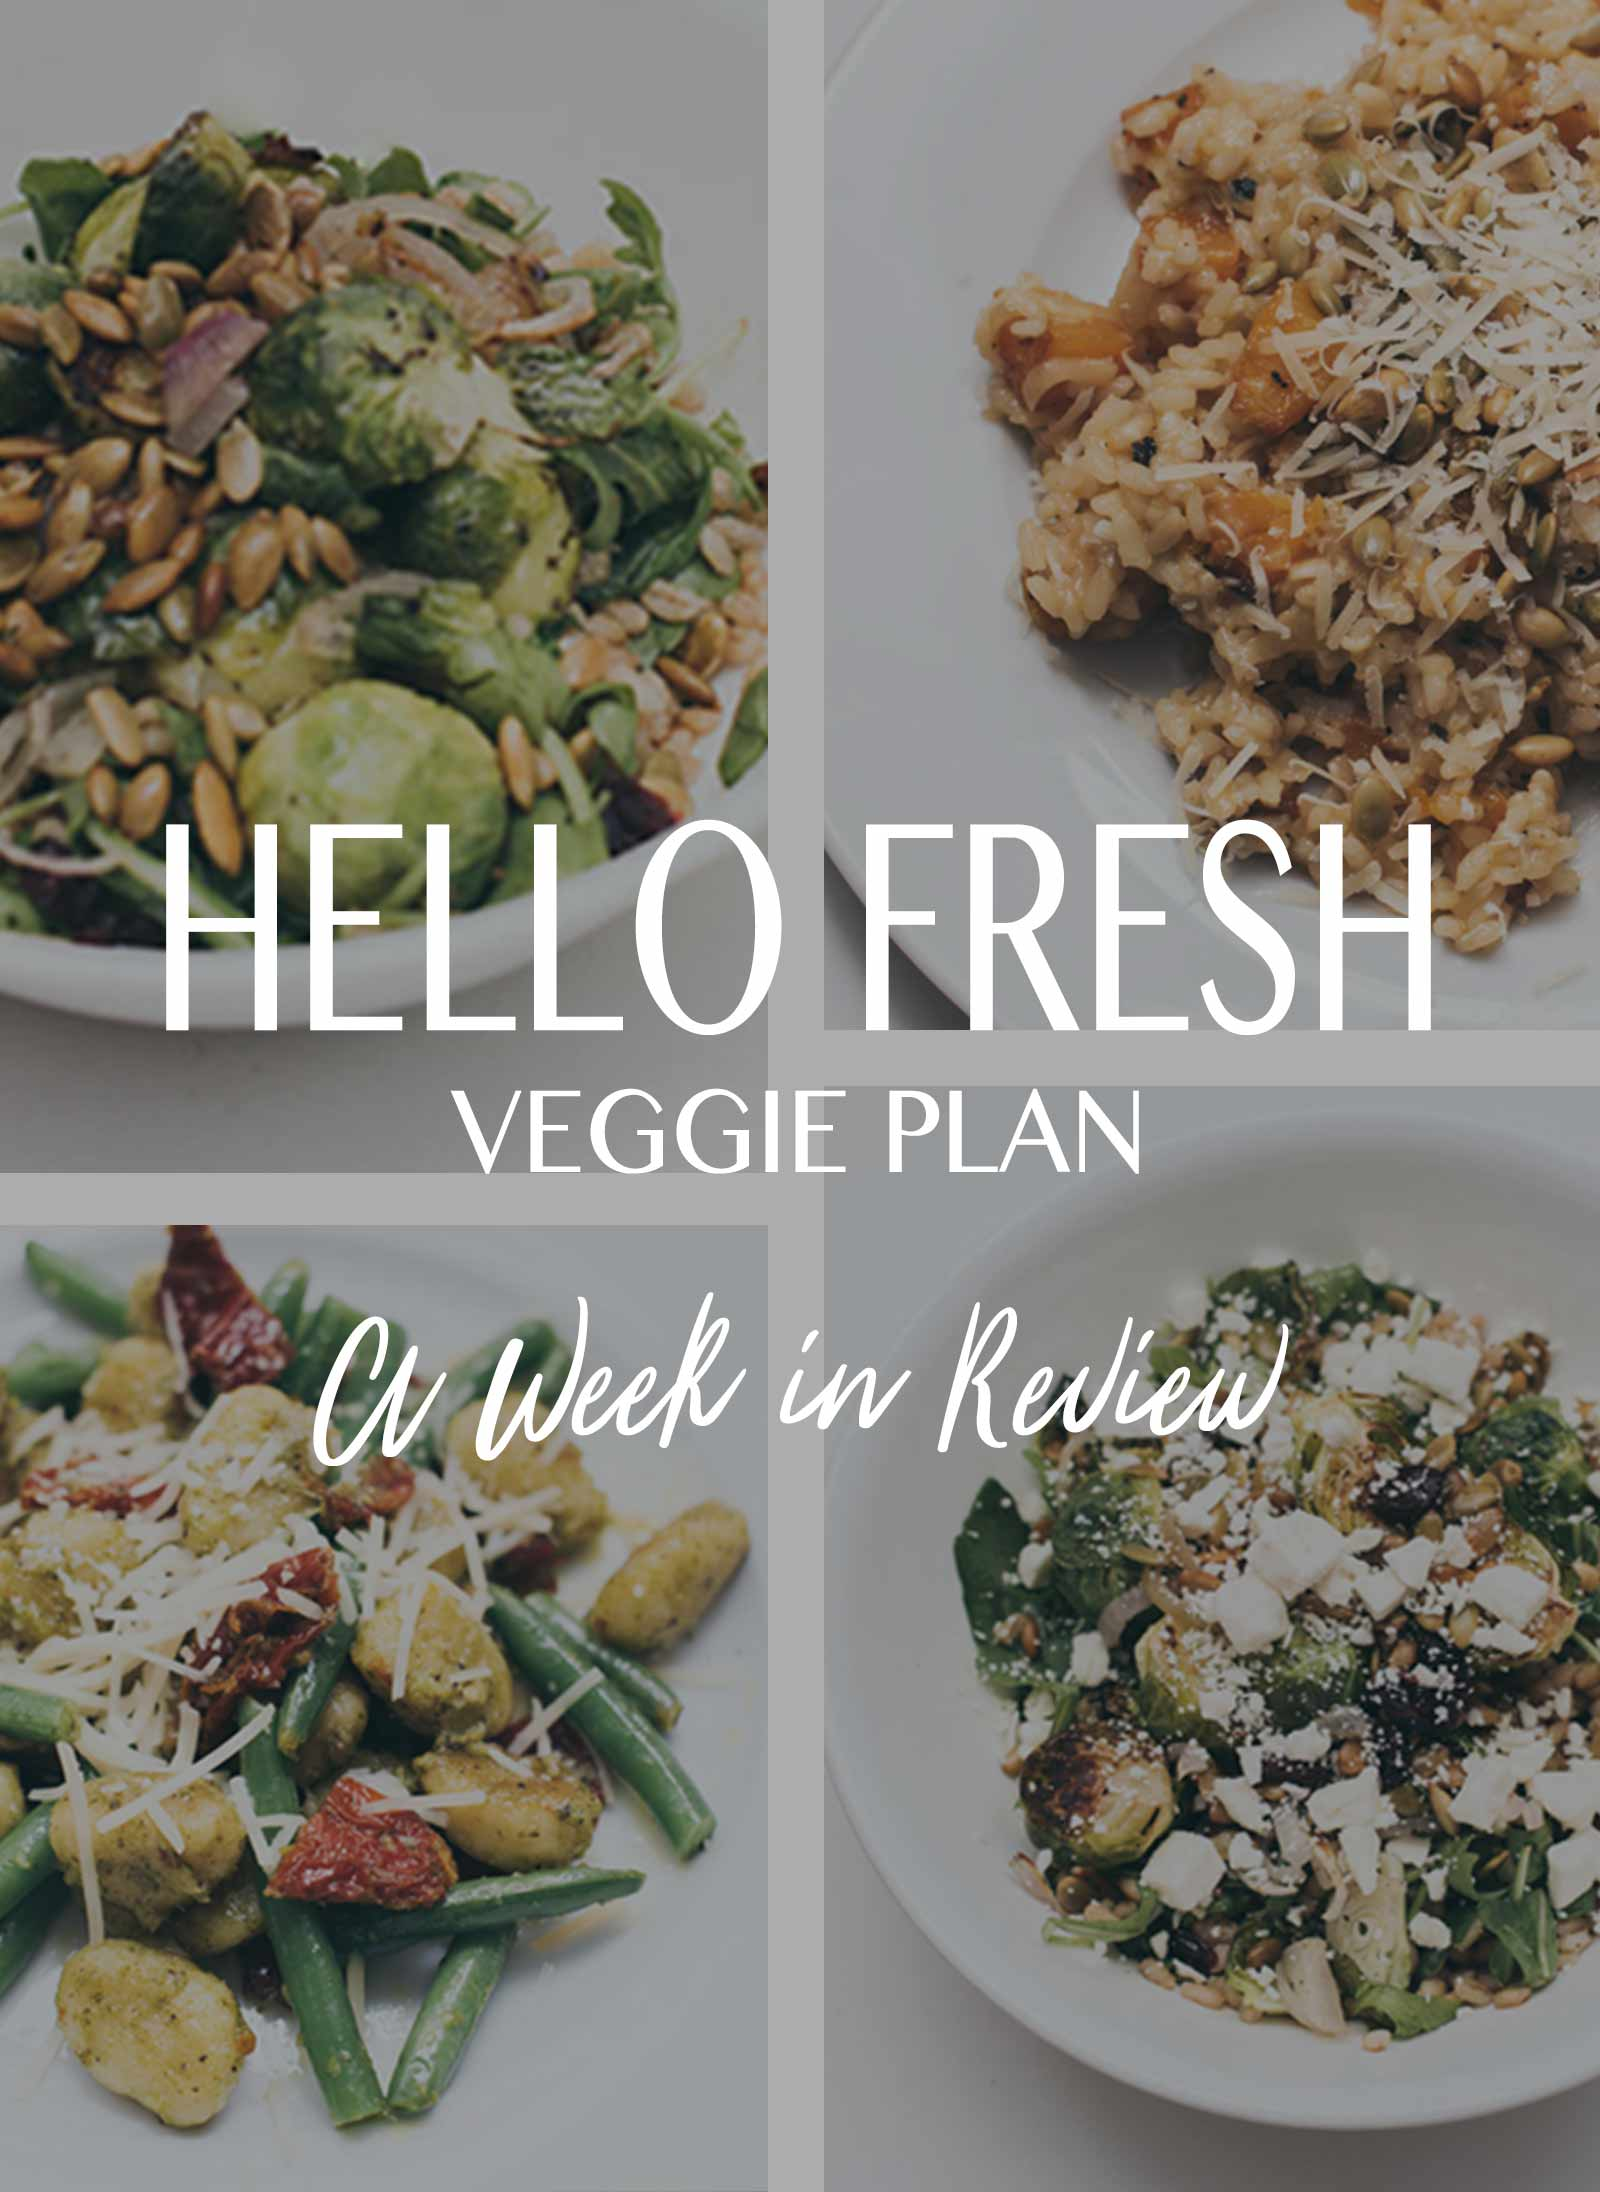 Verified Online Coupon Printable Hellofresh April 2020